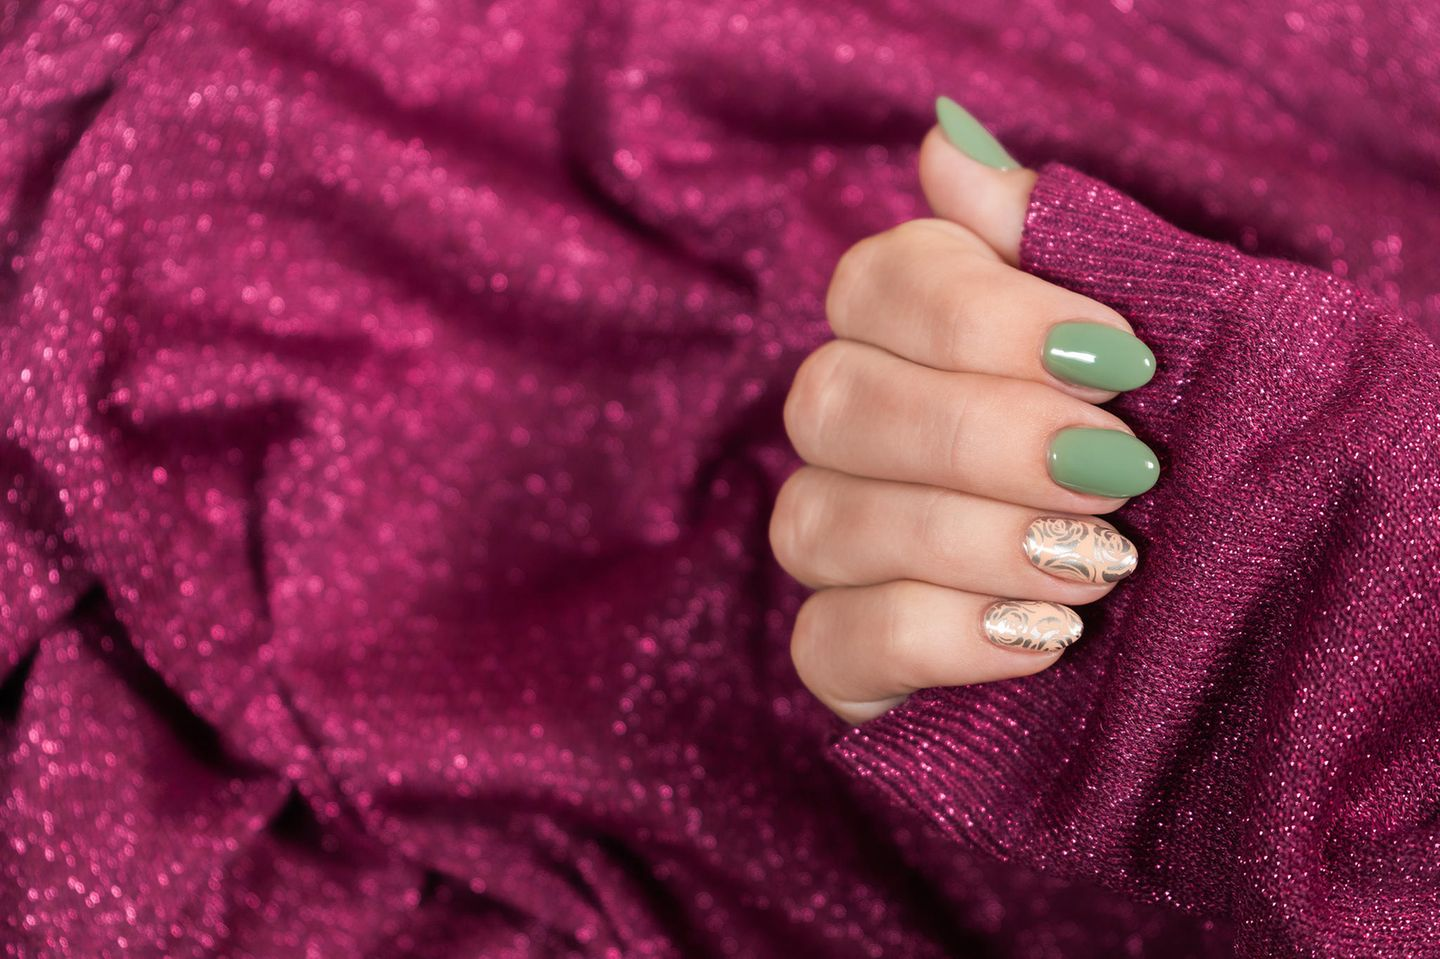 Nagellacktrends im Winter